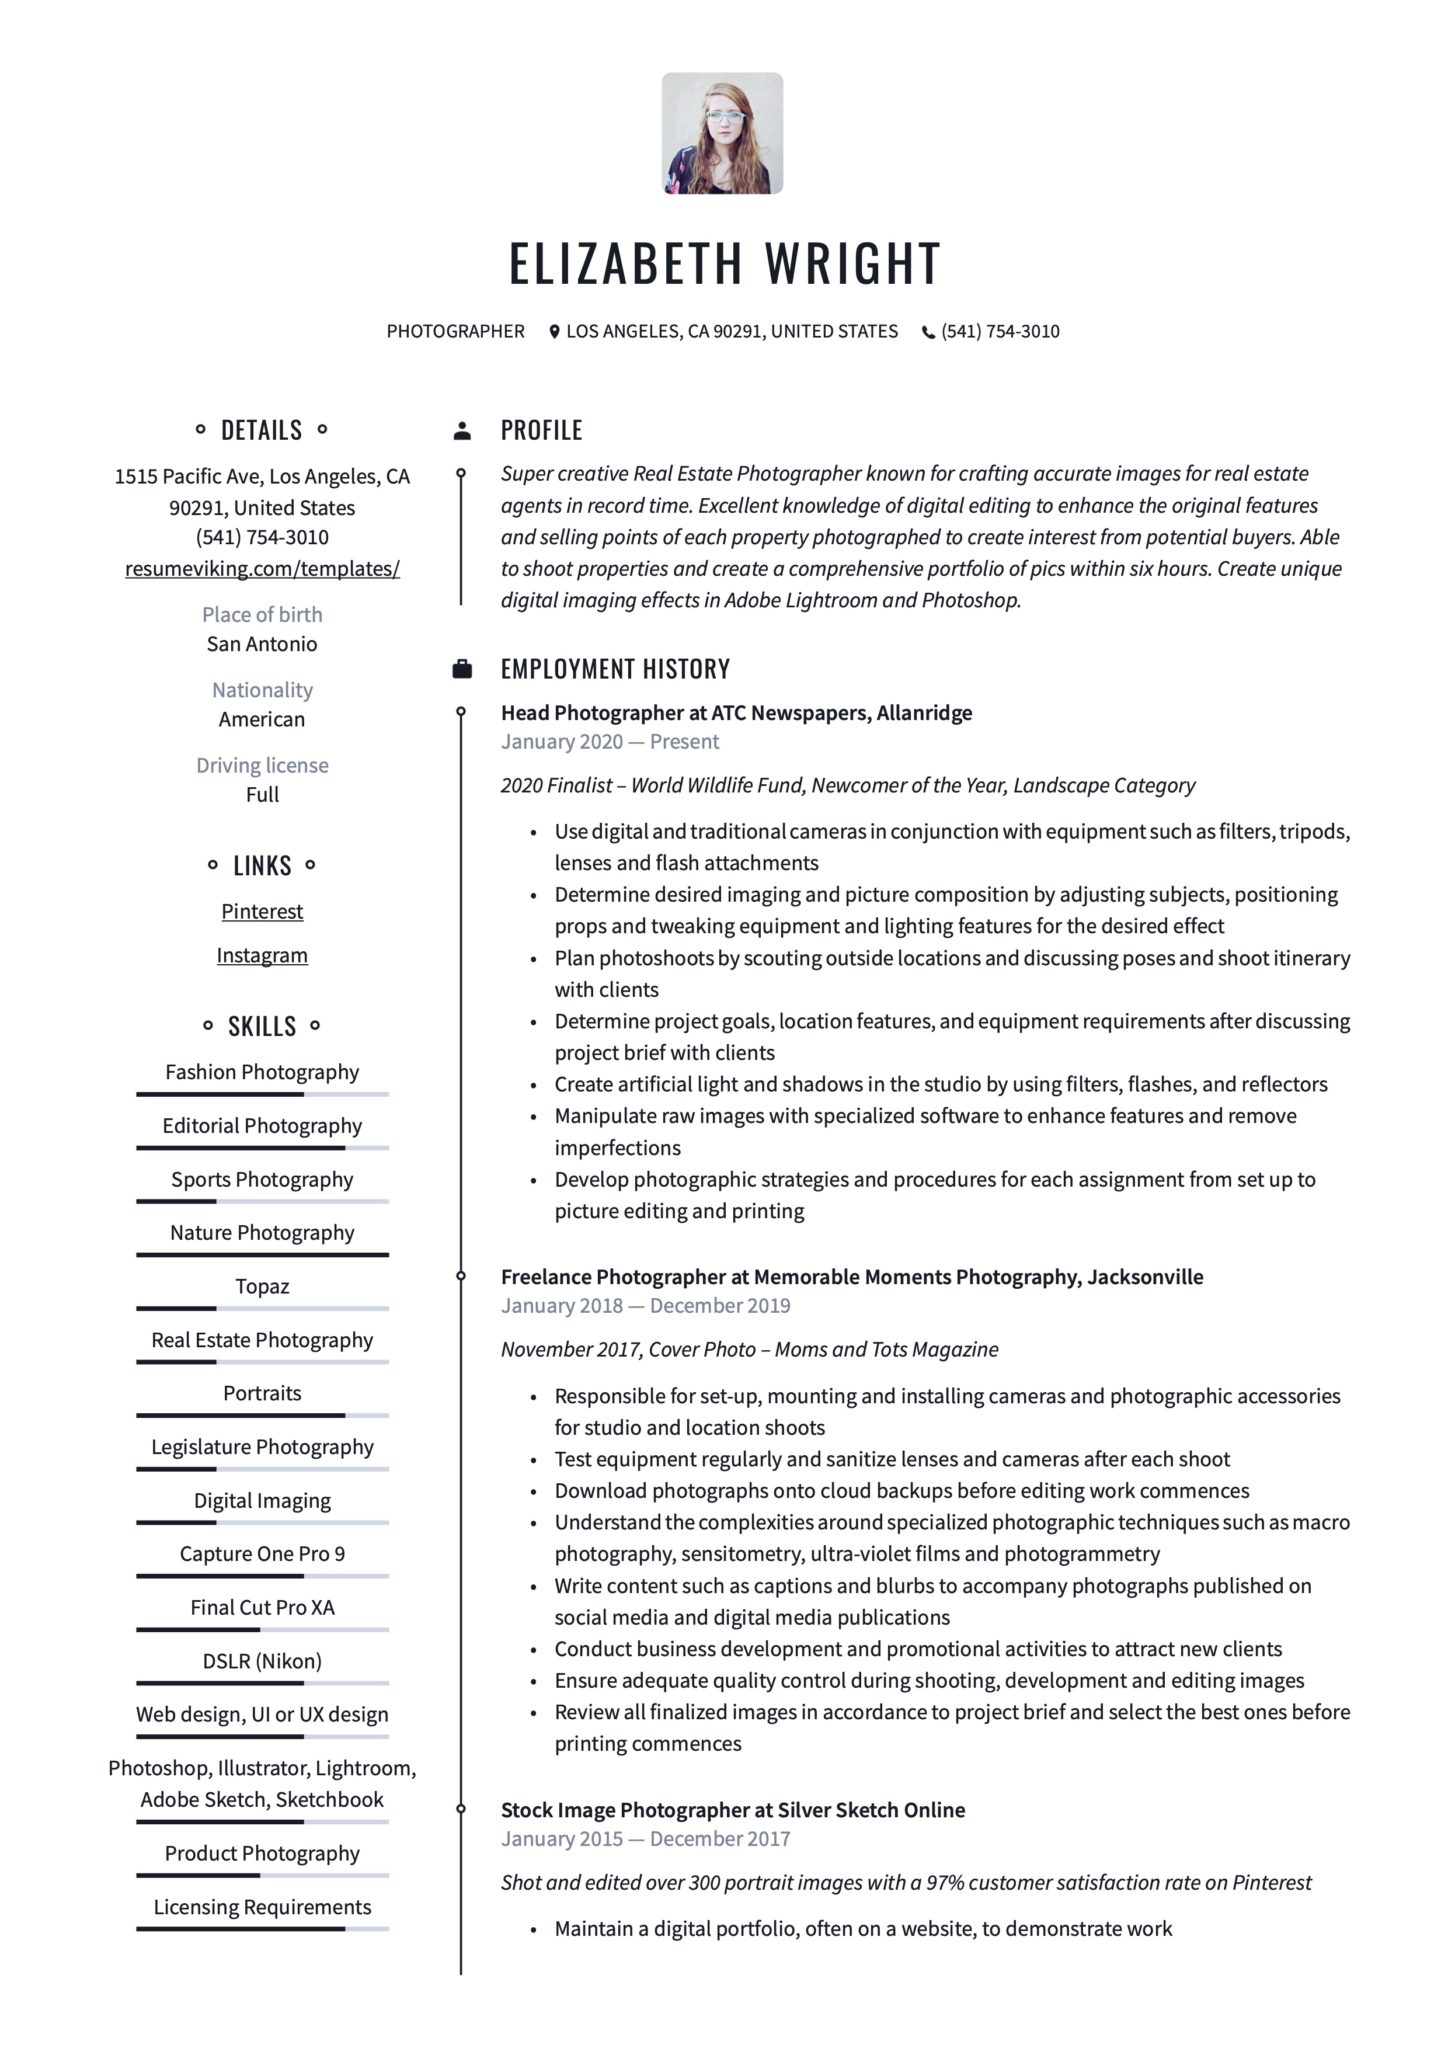 photographer resume writing guide templates duties scaled dual citizenship on comp sci Resume Photographer Duties Resume